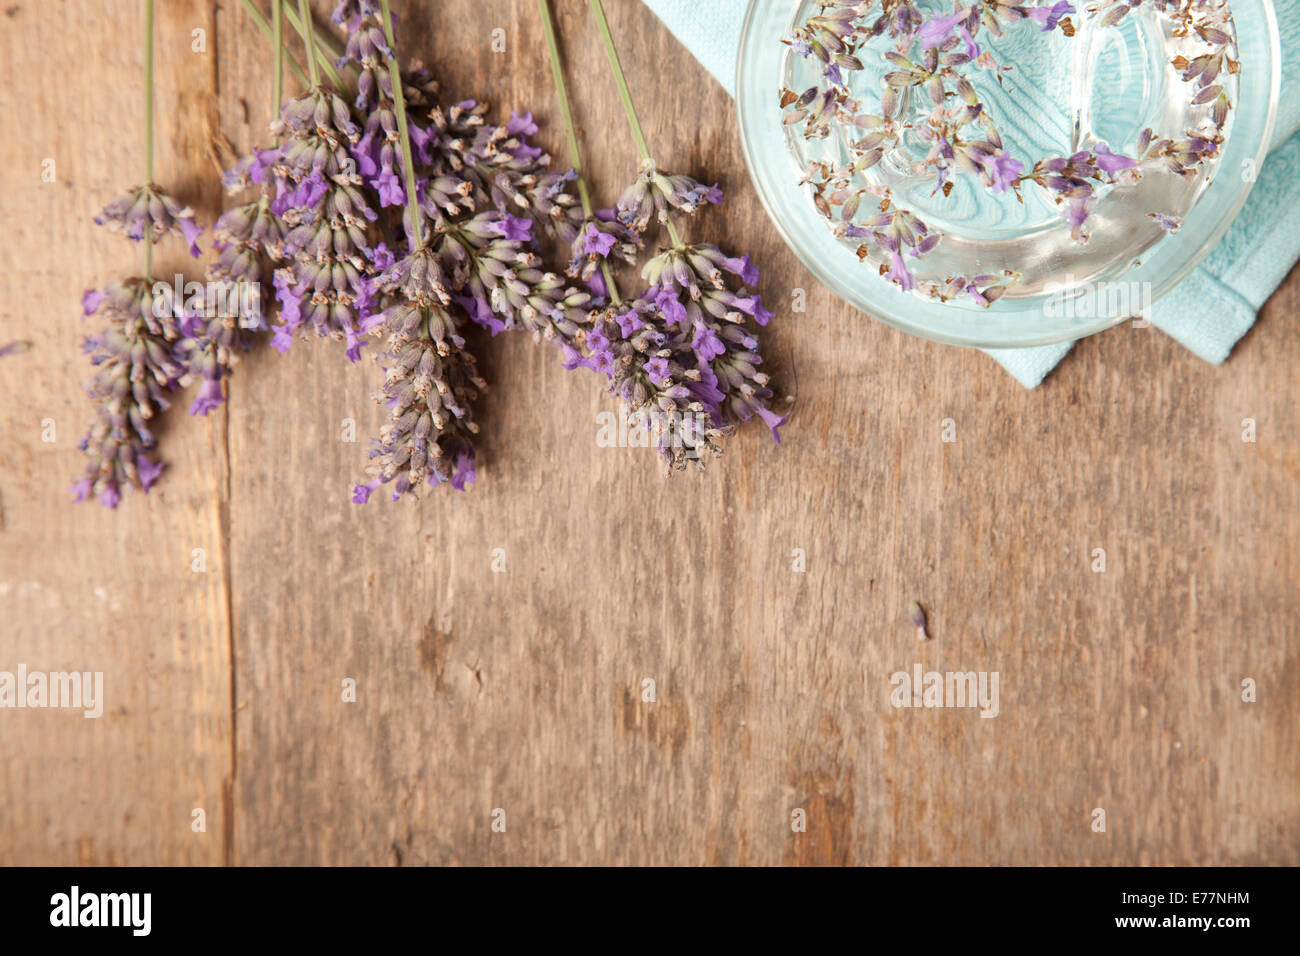 nice wooden background of lavenders and blue towel - Stock Image